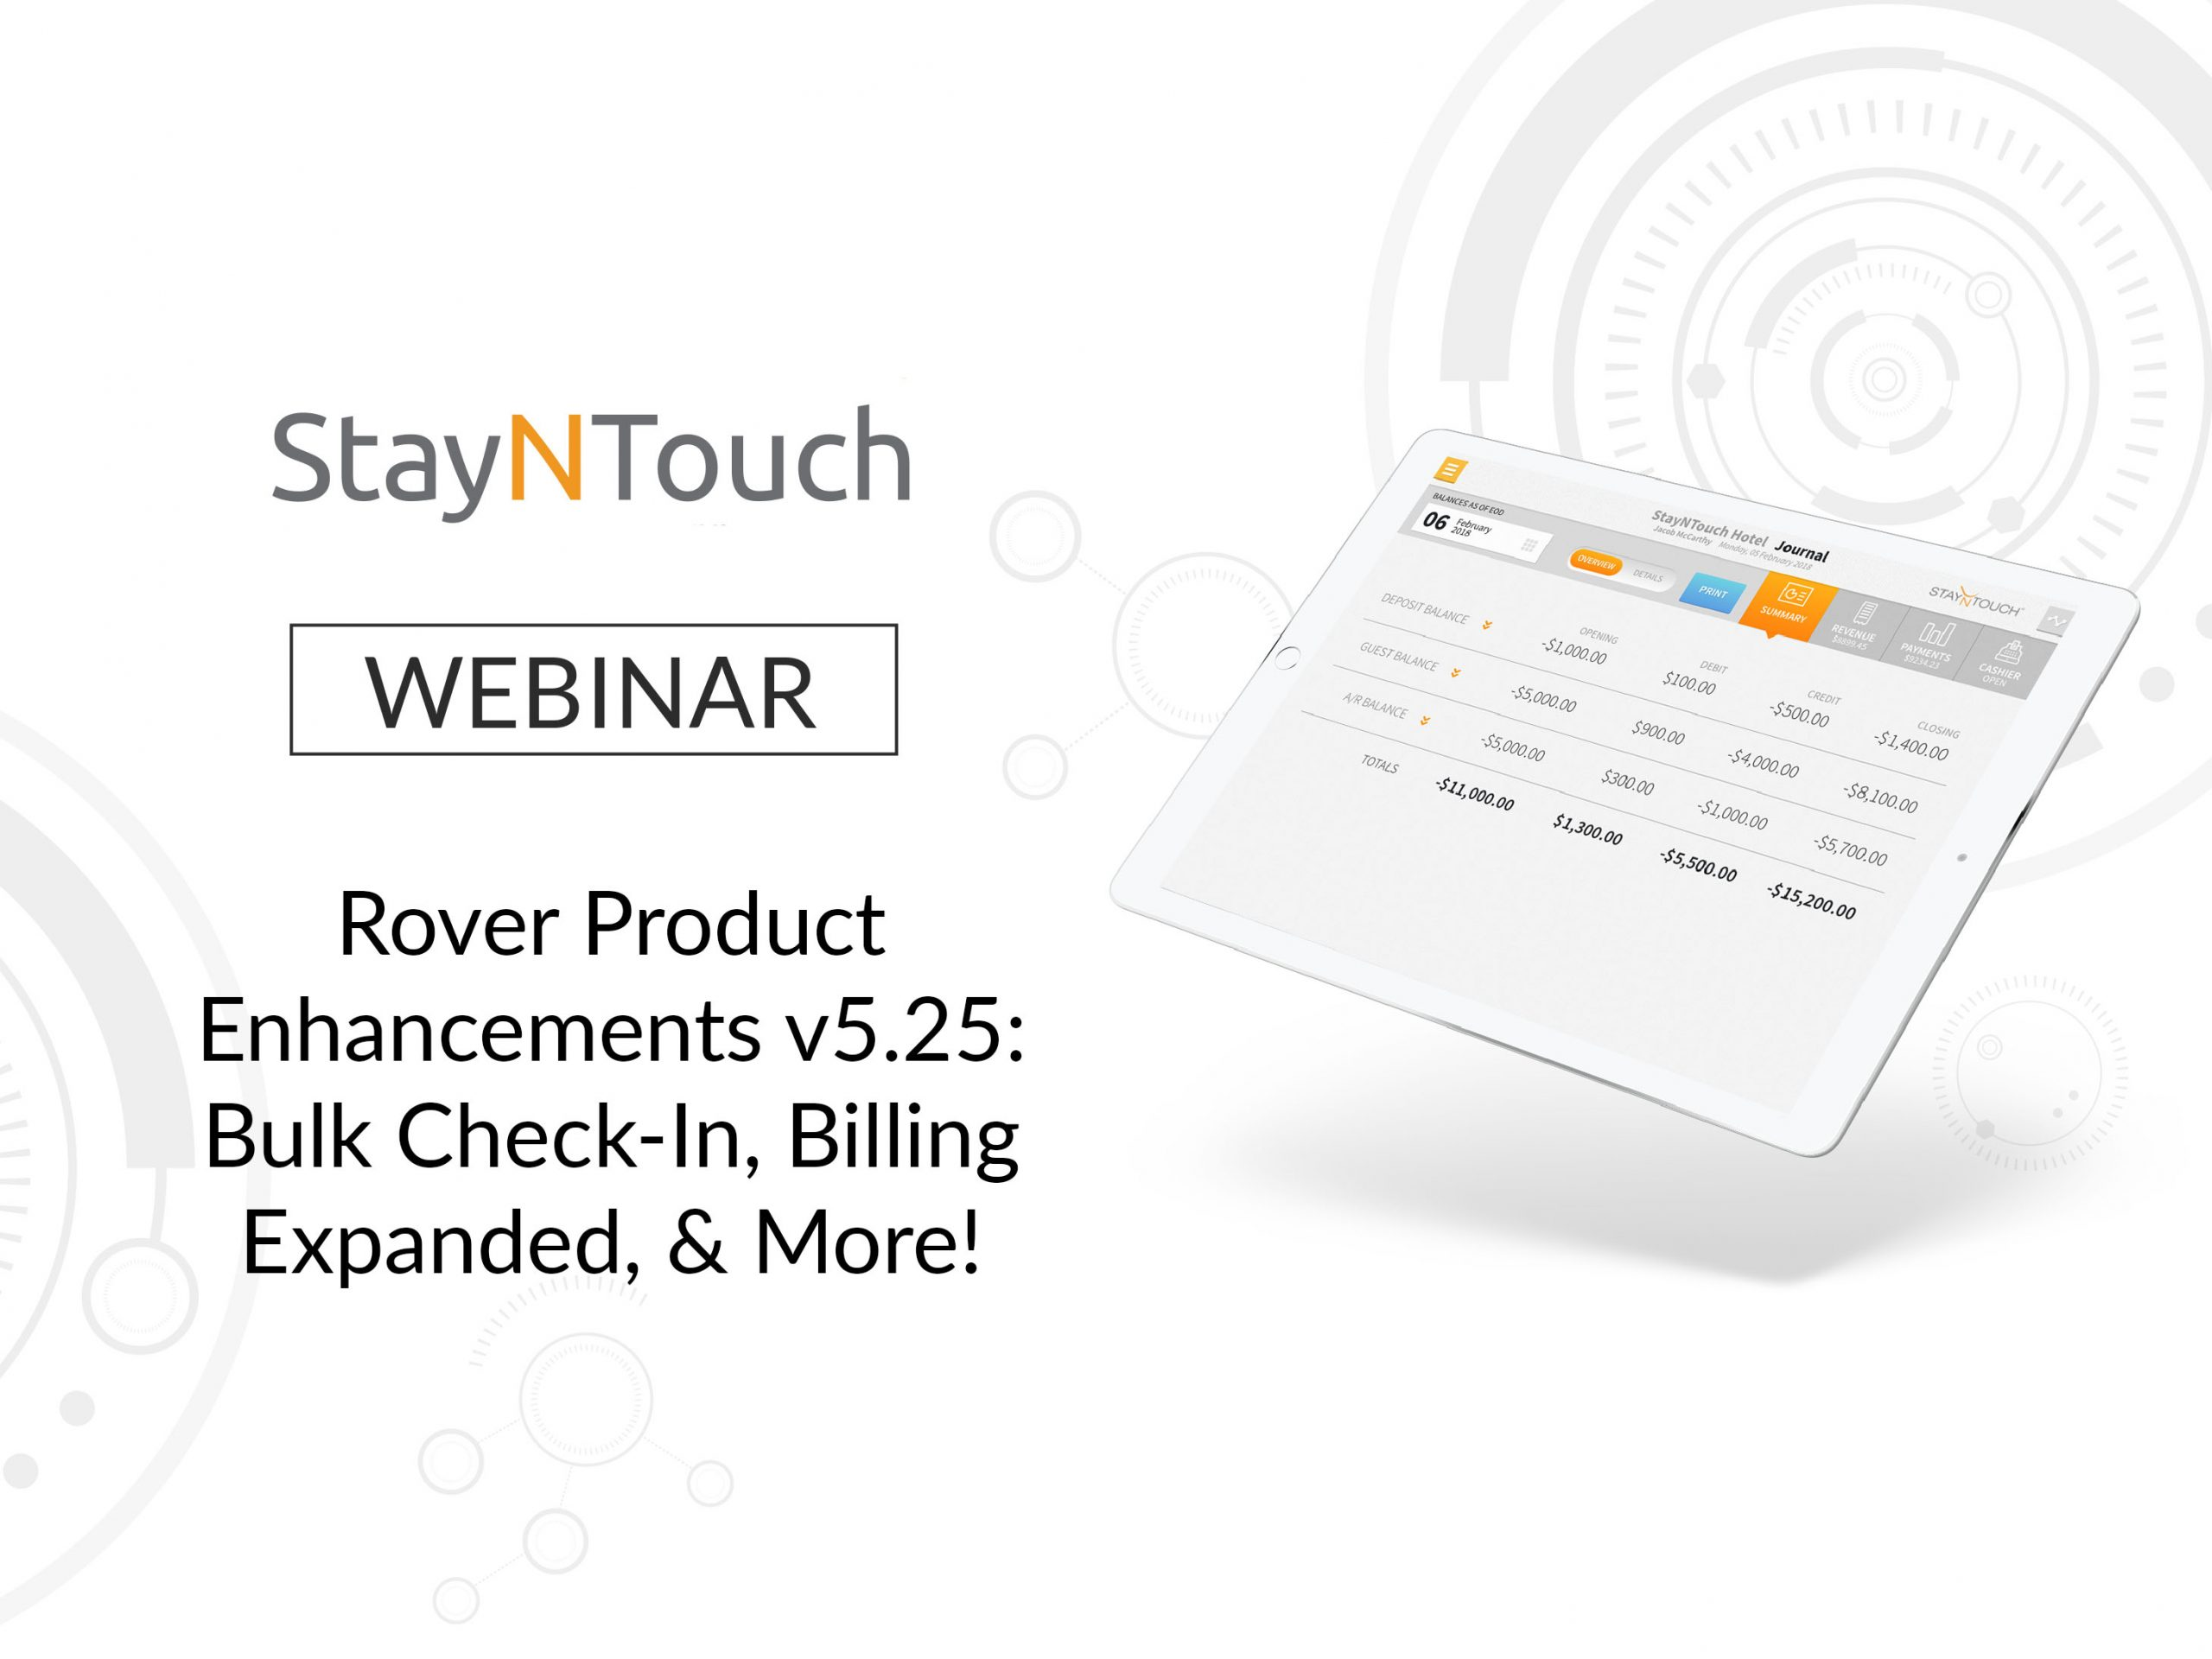 Rover Product Enhancements v5.25: Bulk Check-In, Billing Expanded, & More!